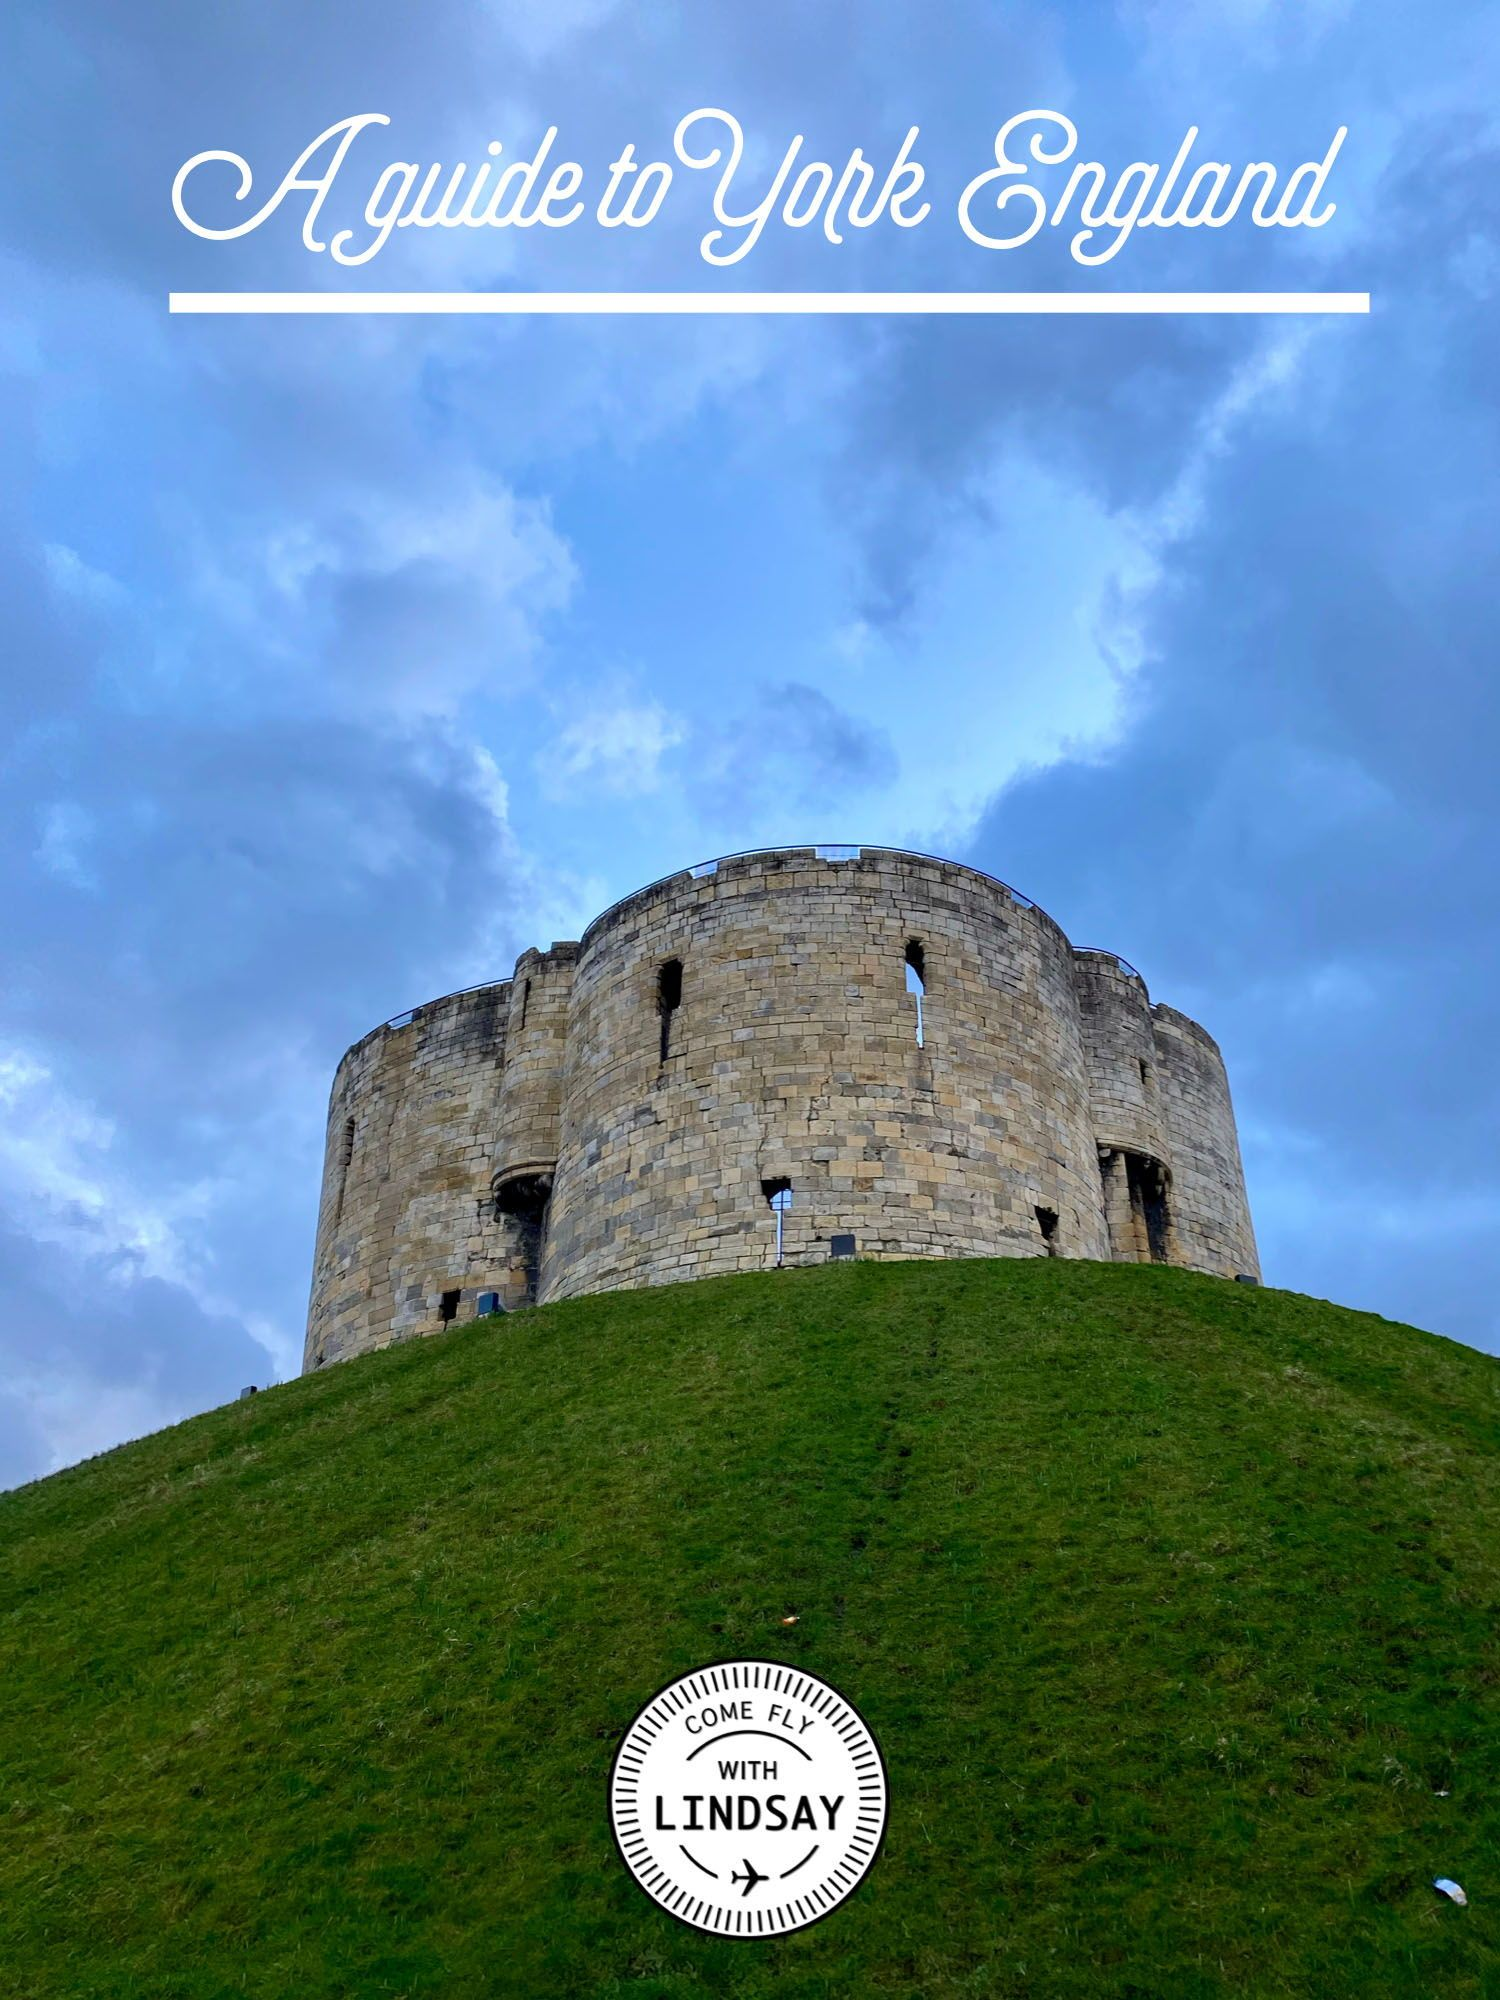 A complete guide to the best things to do in York. Uncover the most exciting York attractions, from the Shambles to the city's secrets. #yorkshireengland #york #yorkvacation #yorktravel #attractionsyork #thingstodoyork #thingstoseeyork